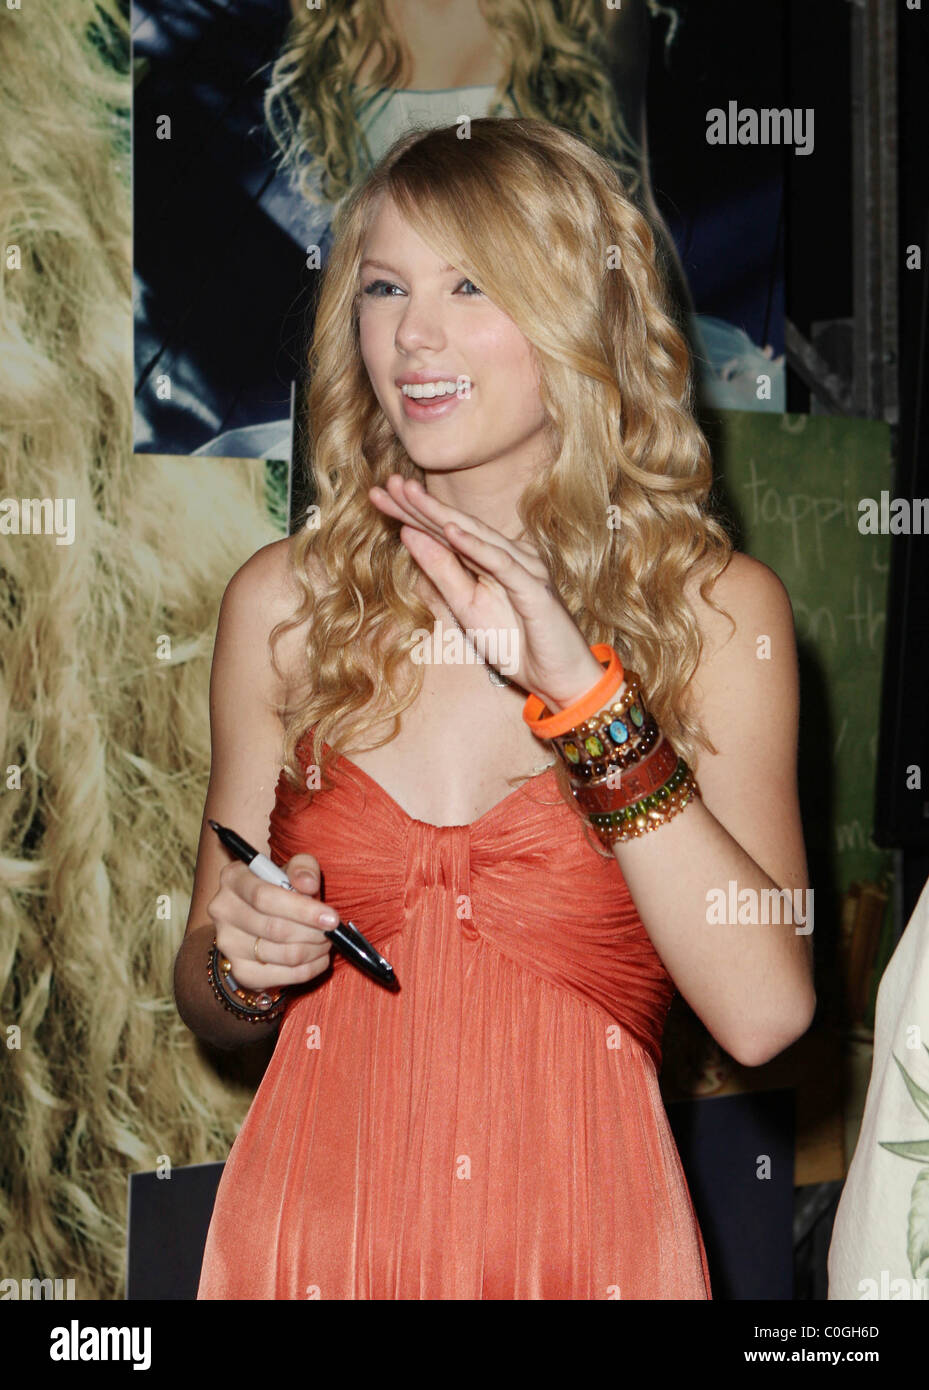 Taylor swift 2008 cma music stock photos taylor swift 2008 cma taylor swift 2008 cma music festival day 3 fan meet and greet at the nashville kristyandbryce Gallery